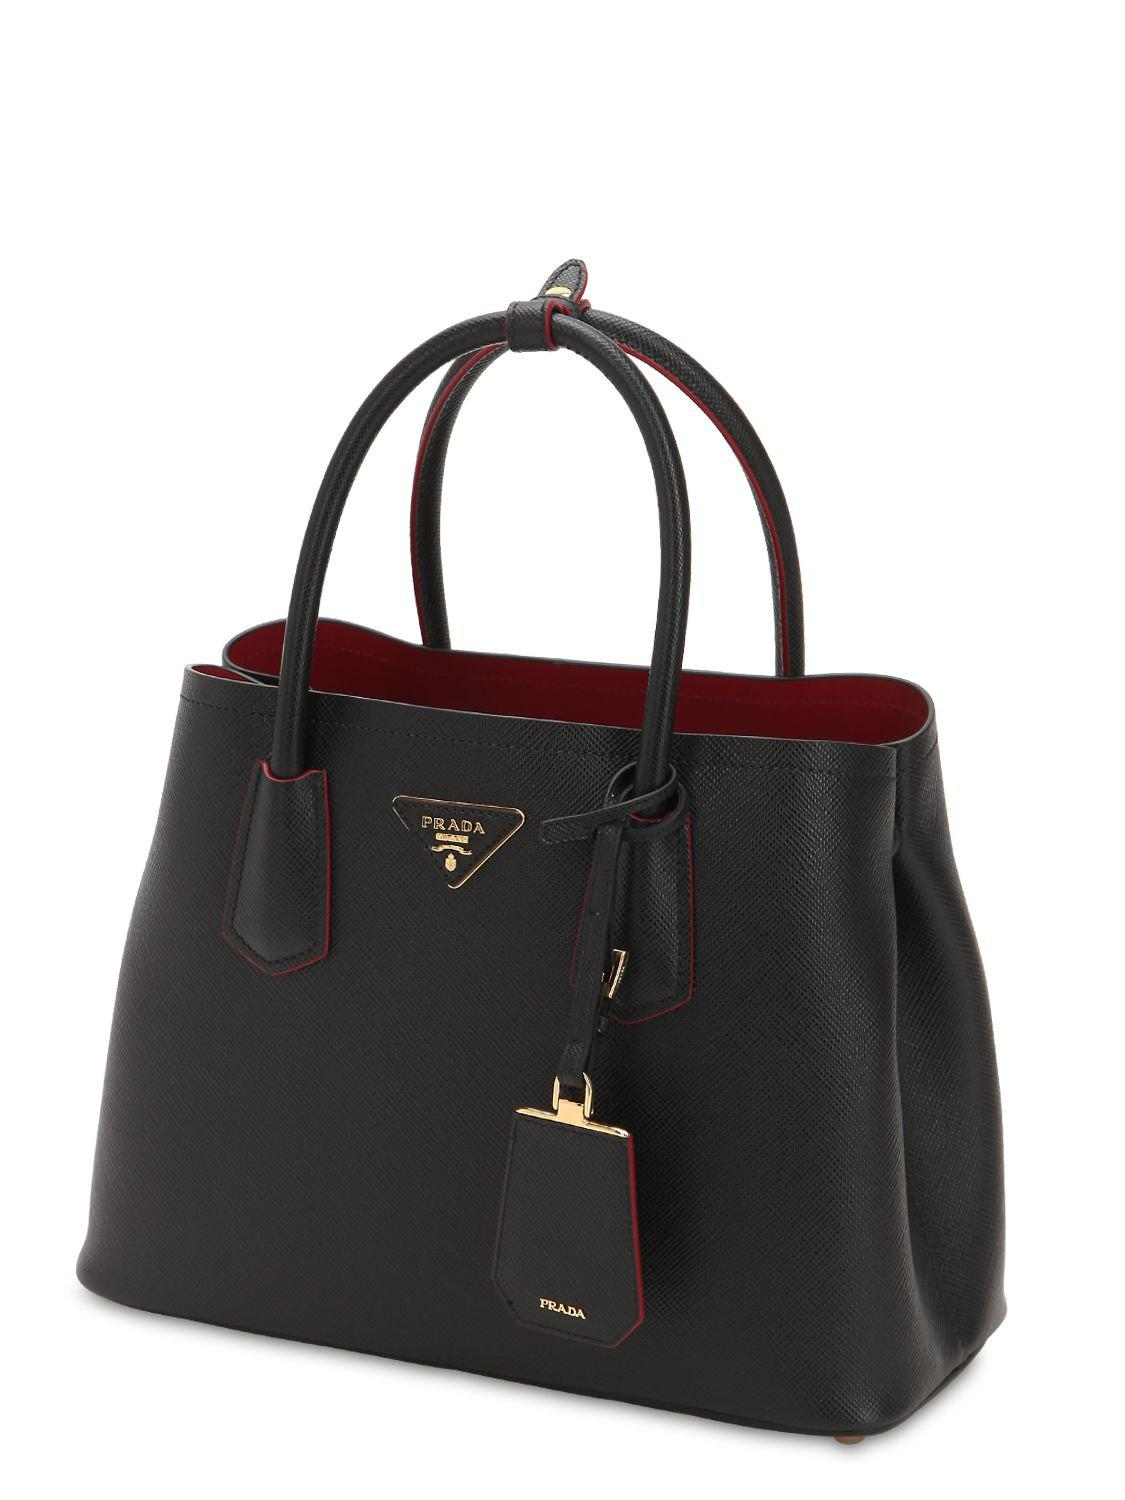 ec98f6c387ff wholesale review prada saffiano lux promenade bag a9d72 48d50  clearance prada  black saffiano leather top handle bag lyst. view fullscreen db649 a6002